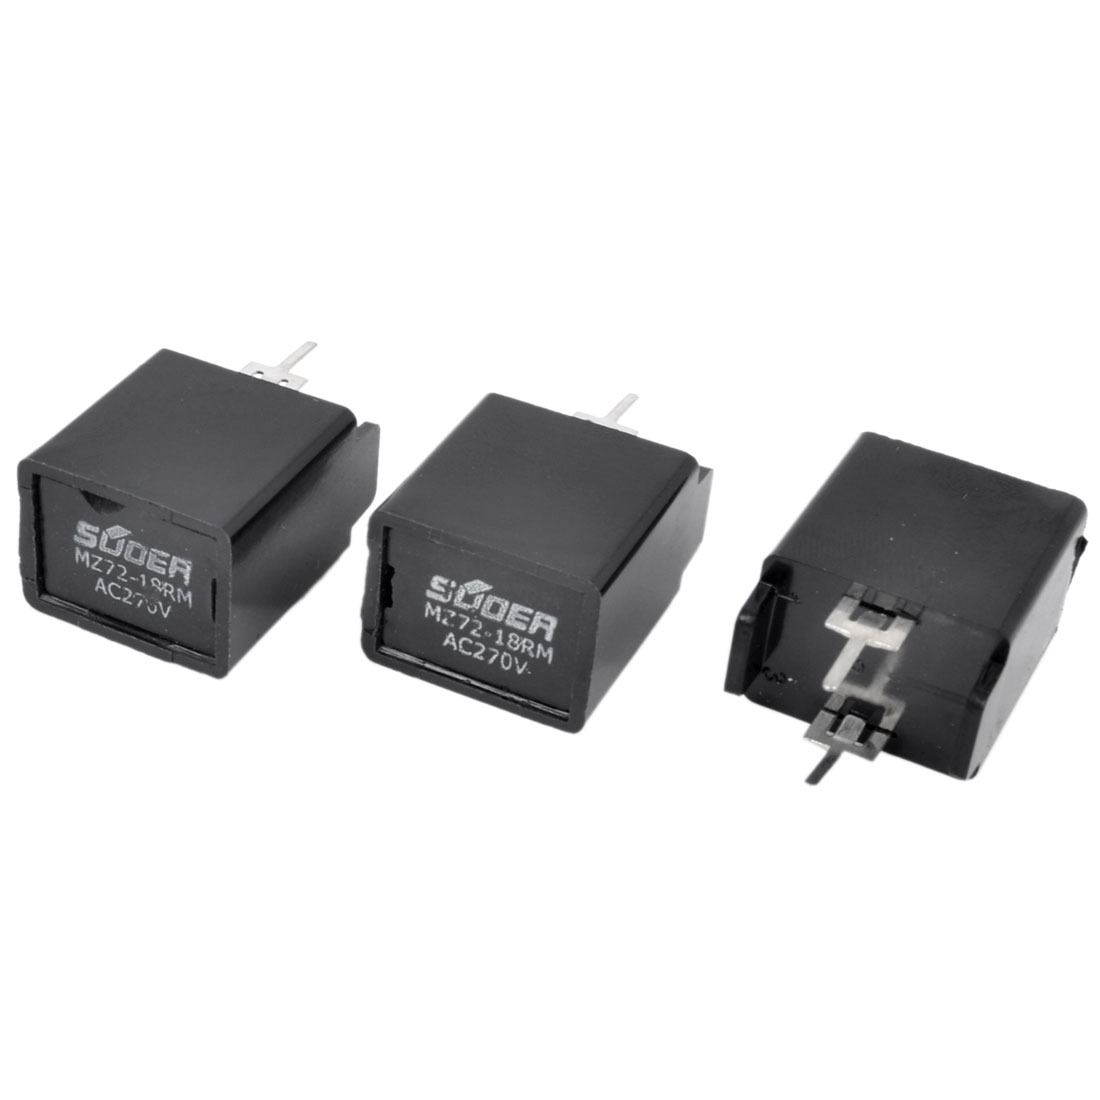 3 x TV Degaussing Send Electronic Resistance 18 Ohm 2 Terminals AC 270V MZ72-18RM